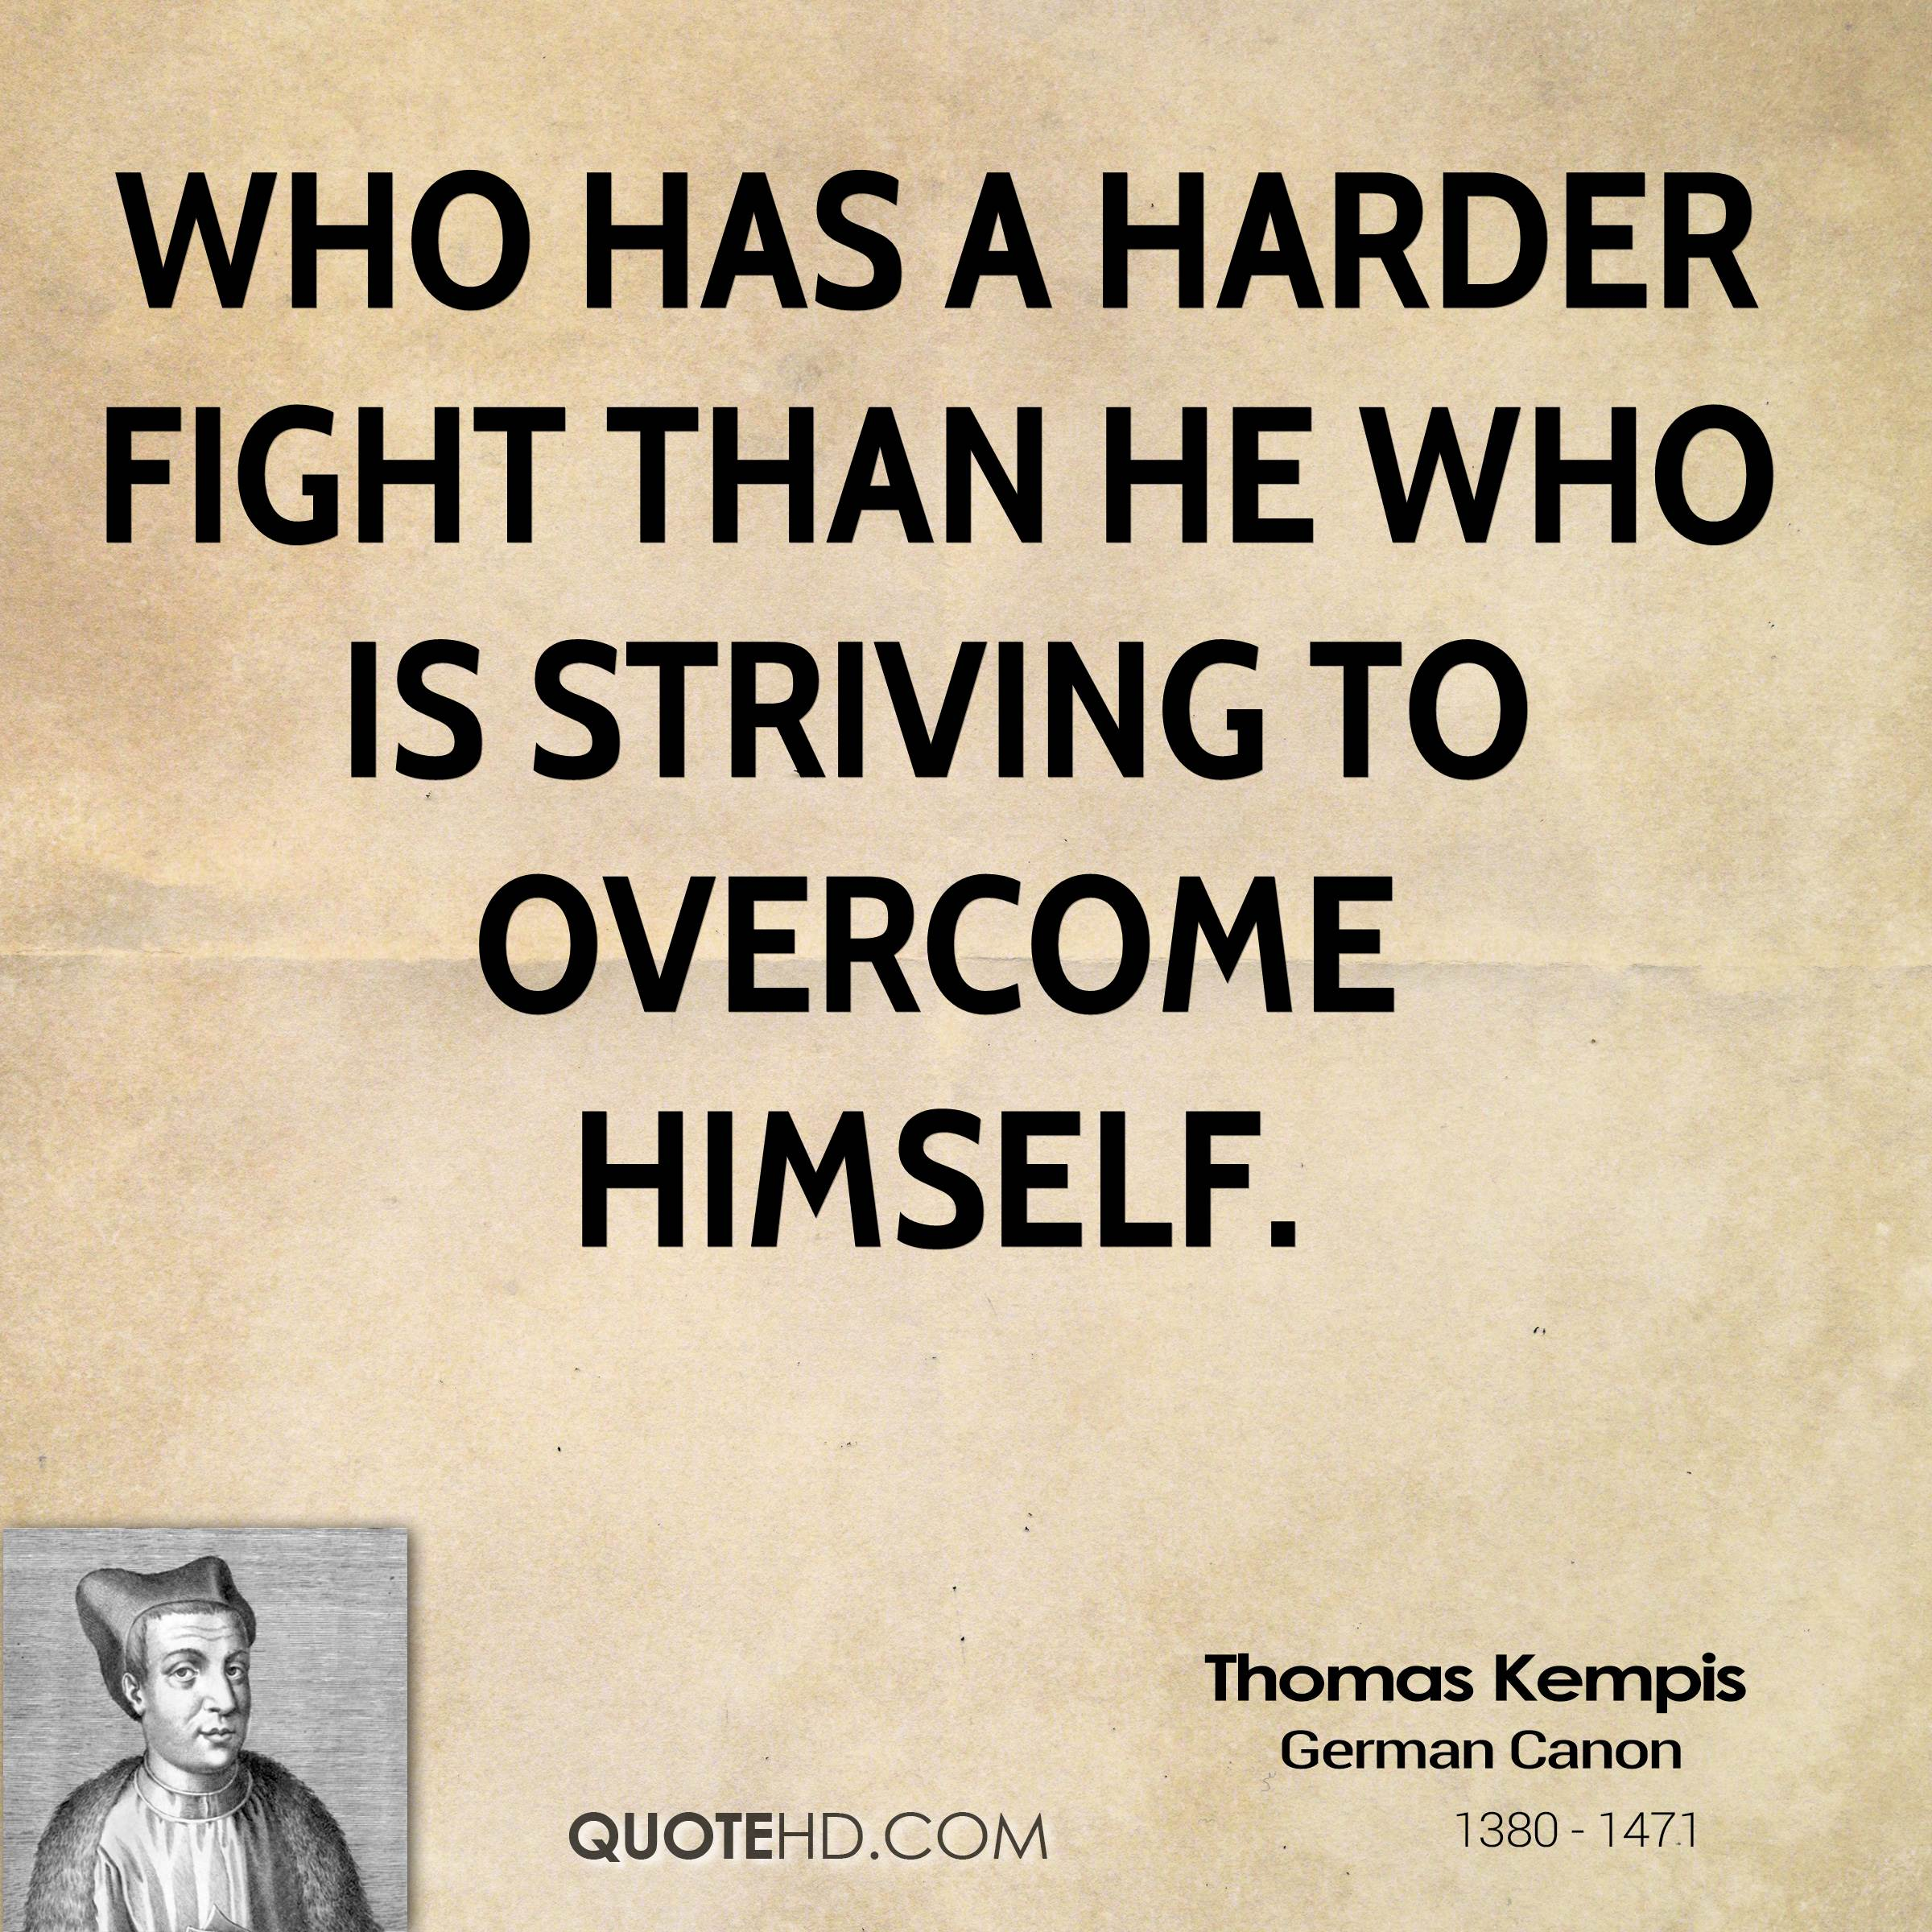 Who has a harder fight than he who is striving to overcome himself.